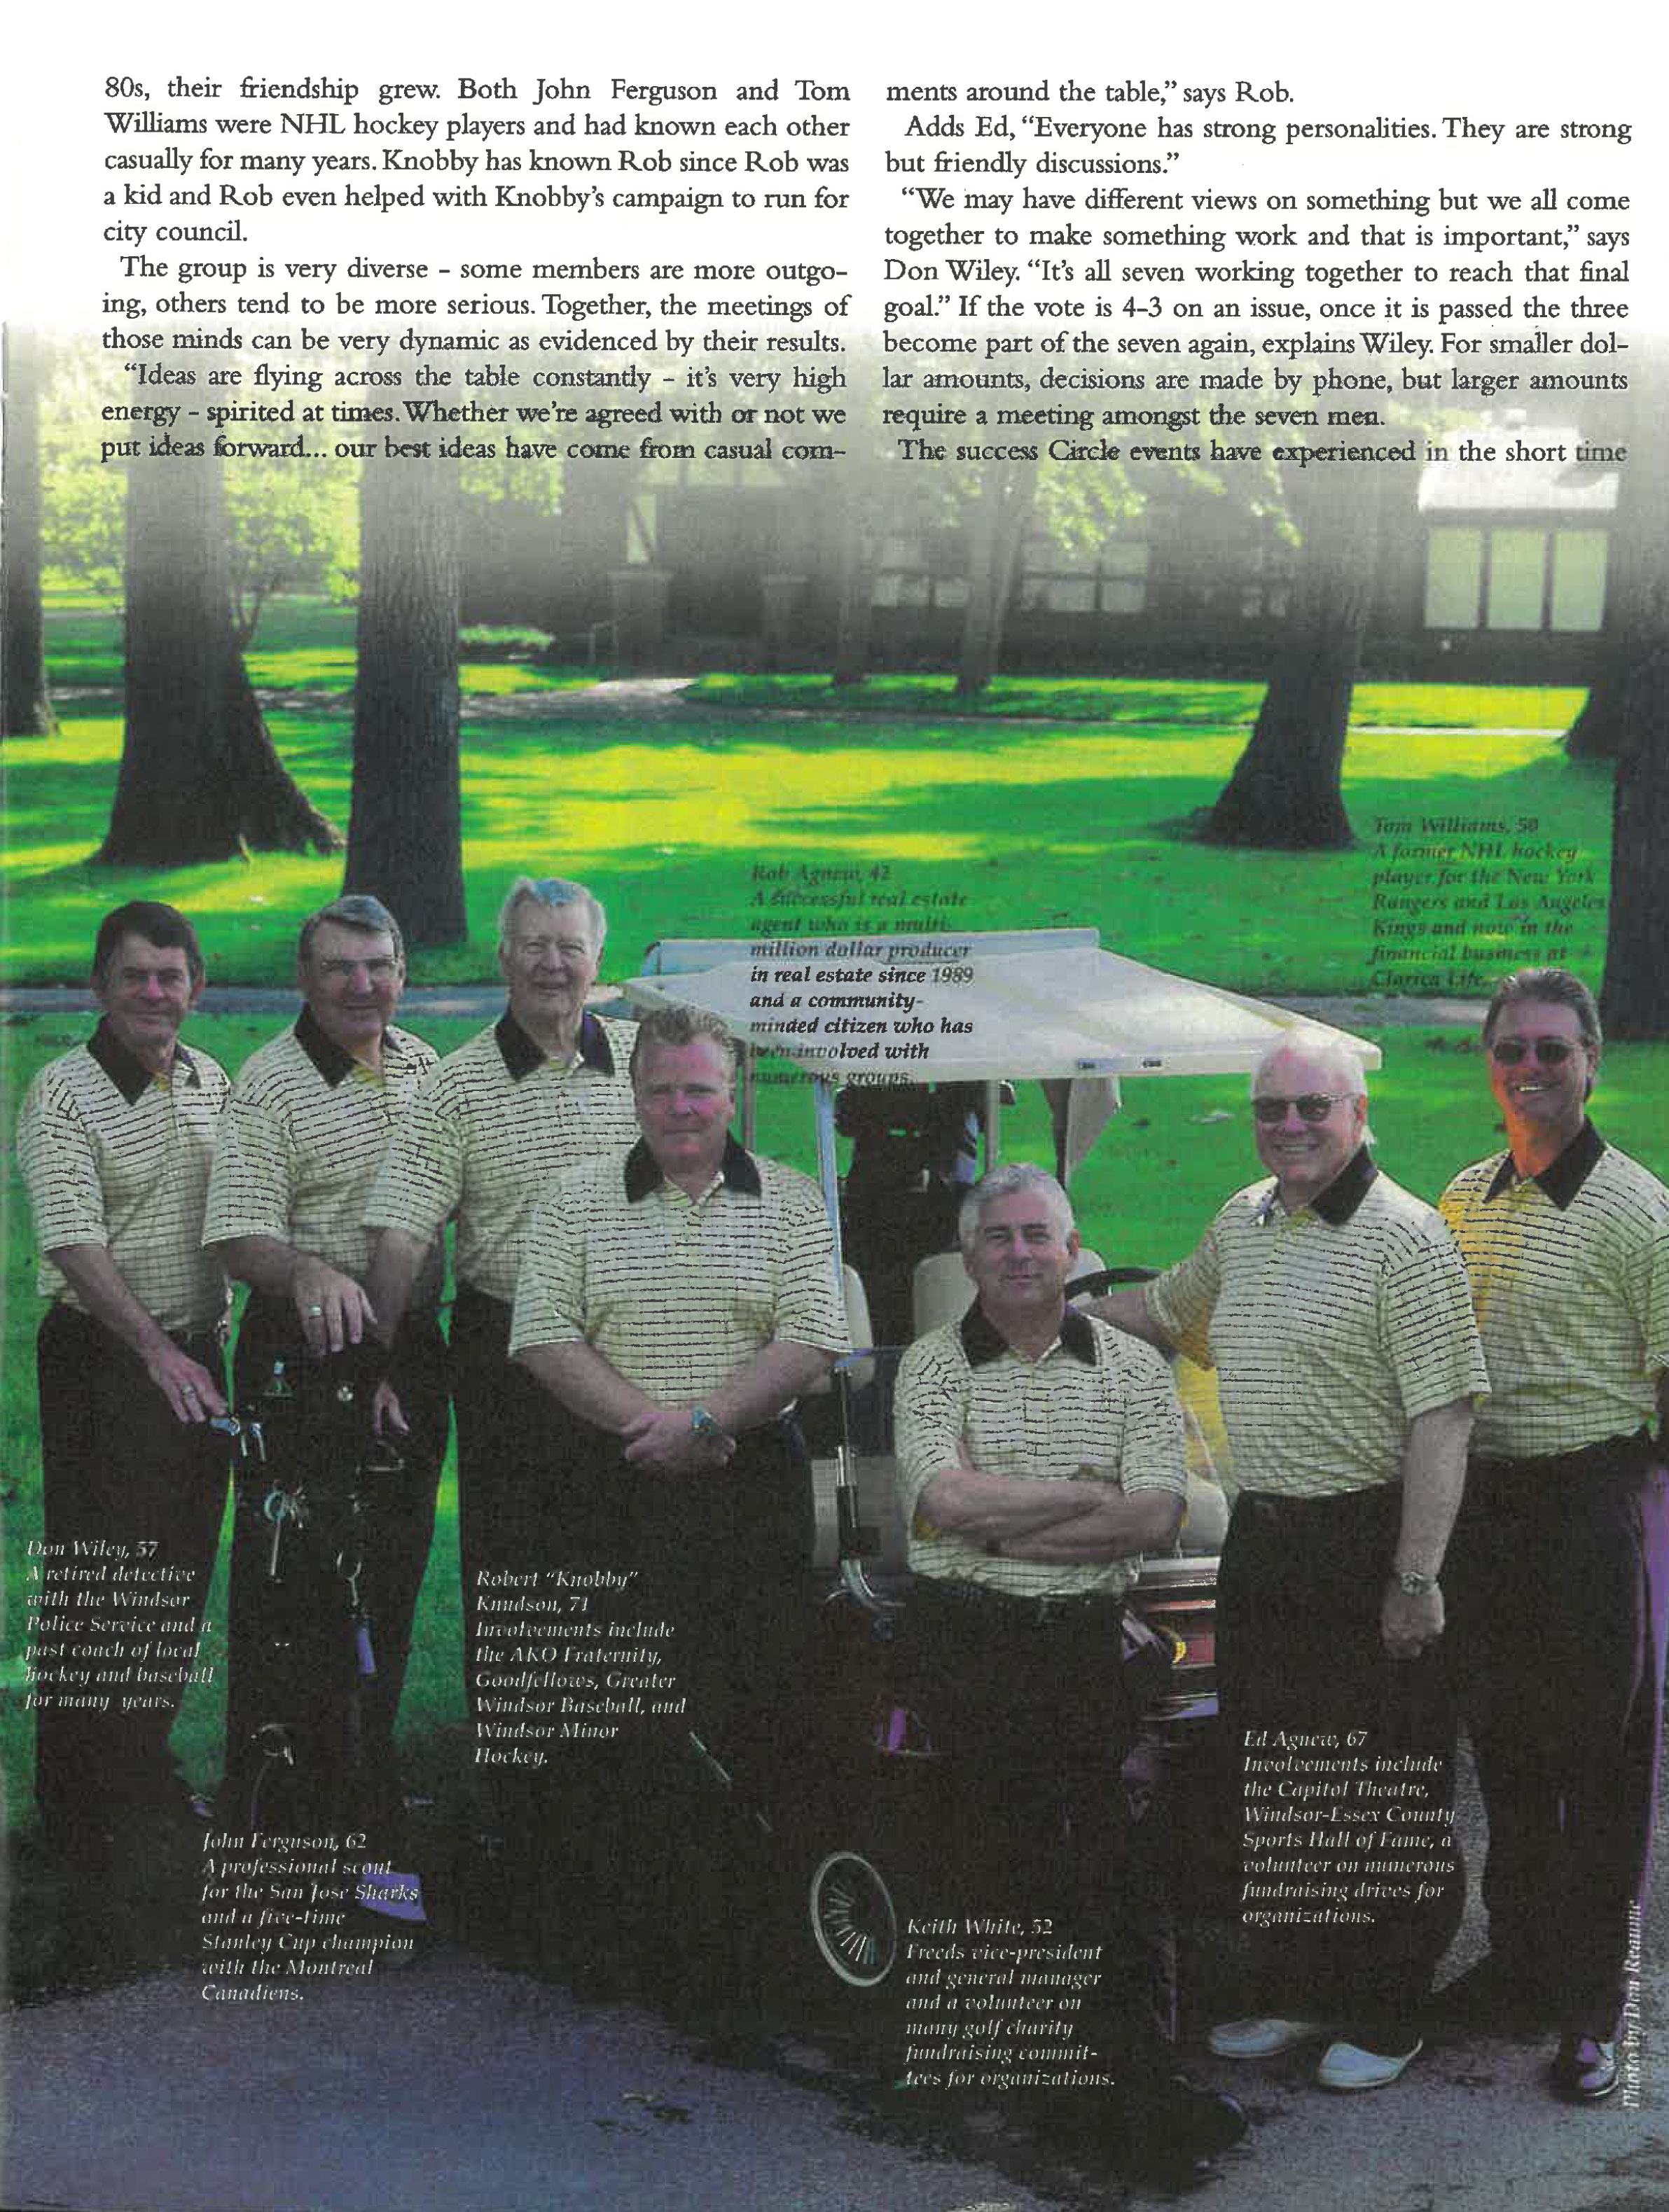 The magic of Seven Article page 2, Photo of Circle of Seven team in a golf field